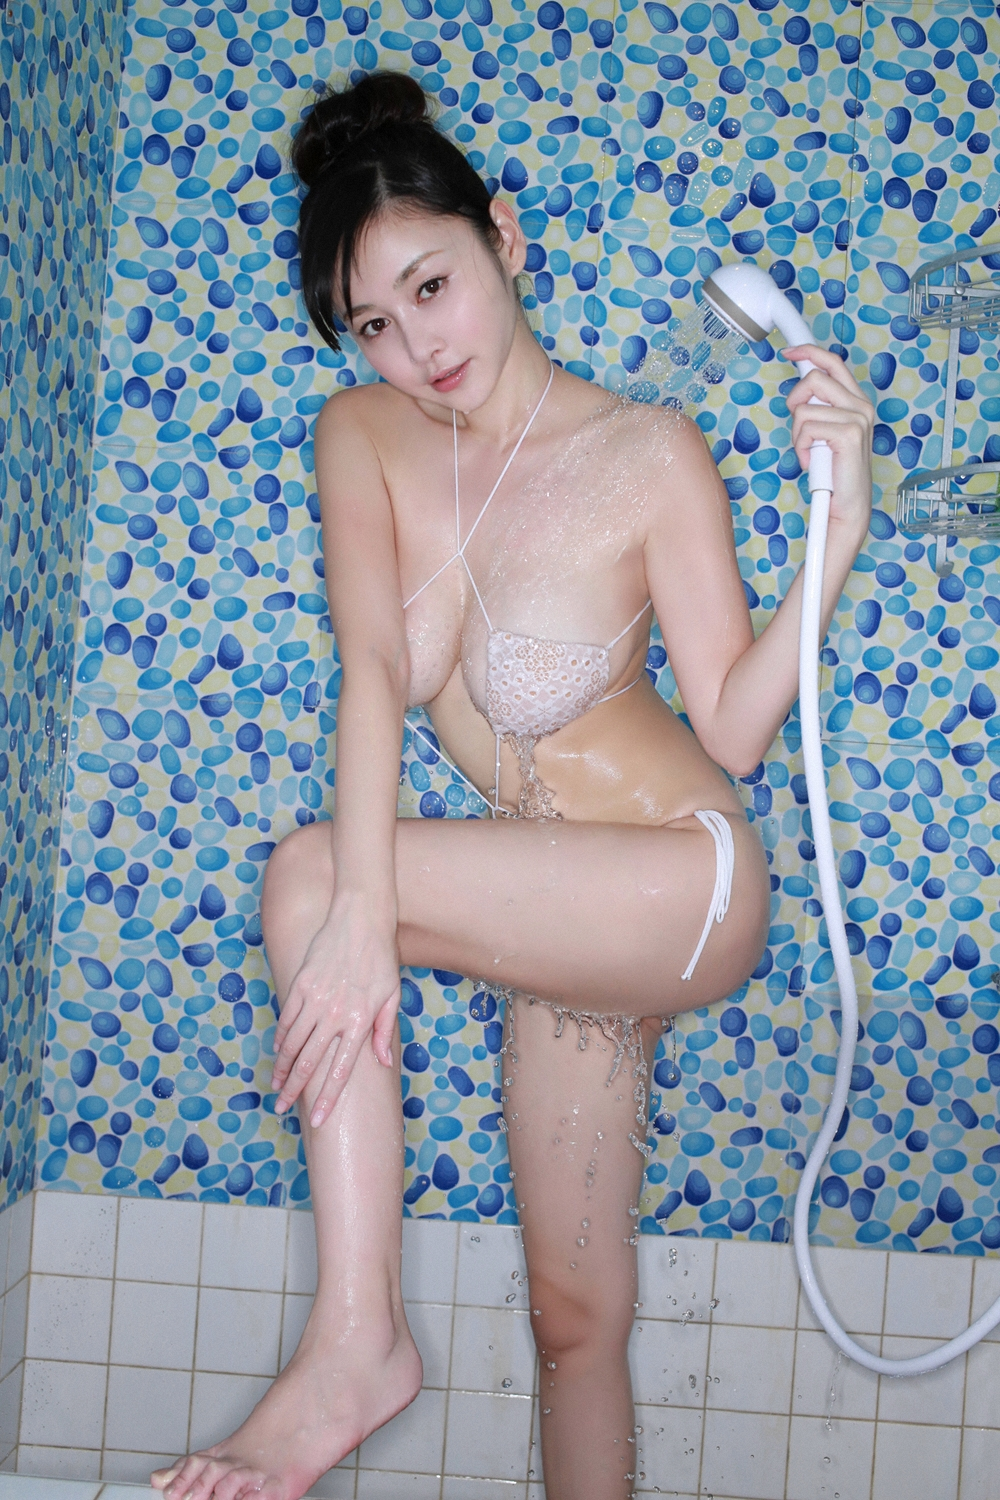 杉原杏璃 Anri Sugihara YS Web Vol 655 Pictures 95